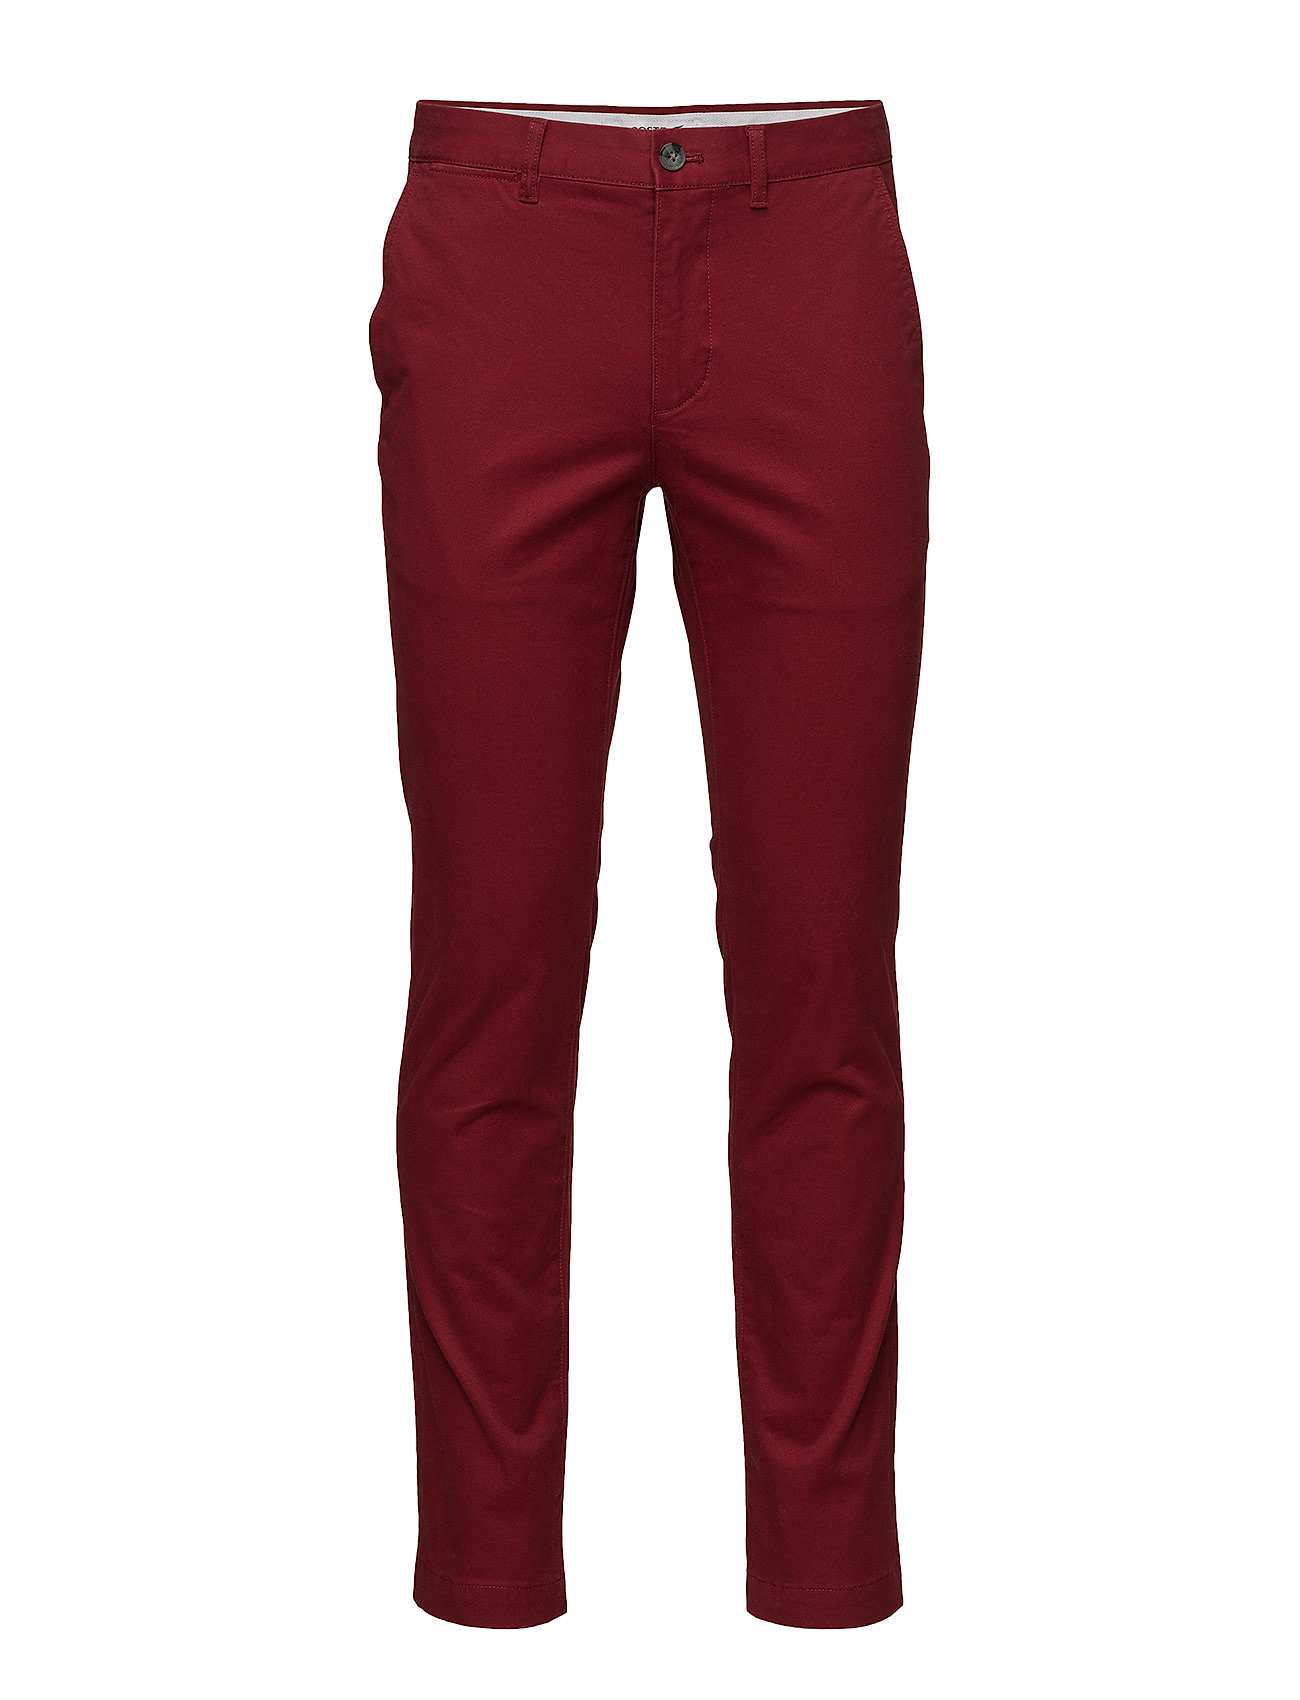 Image of Trousers Bukser Rød LACOSTE (2989839877)